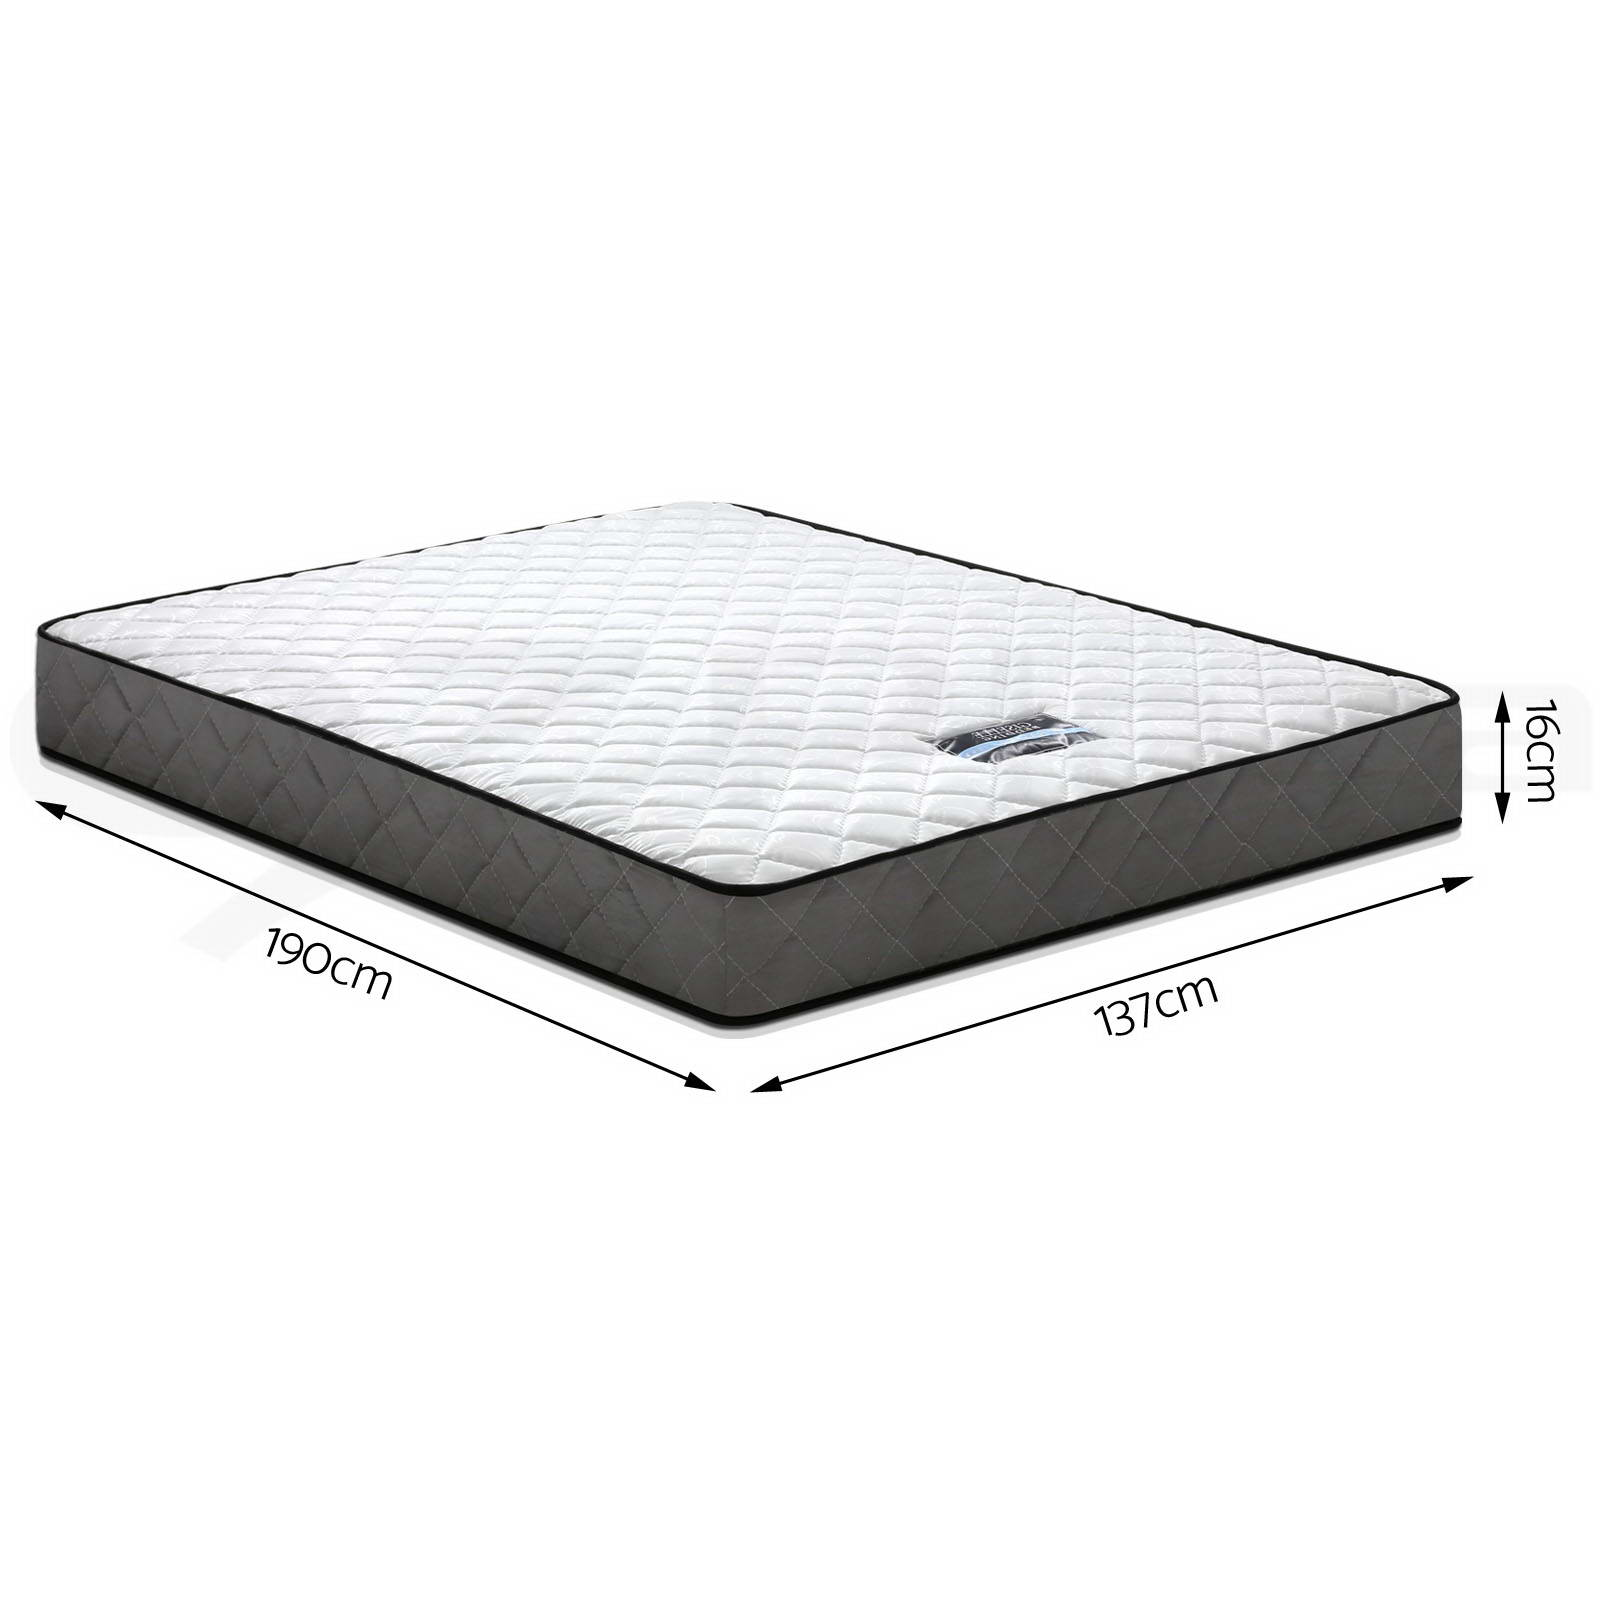 Size Of A King Single Bed Queen King Single Double Mattress Bed Size Bonnell Spring